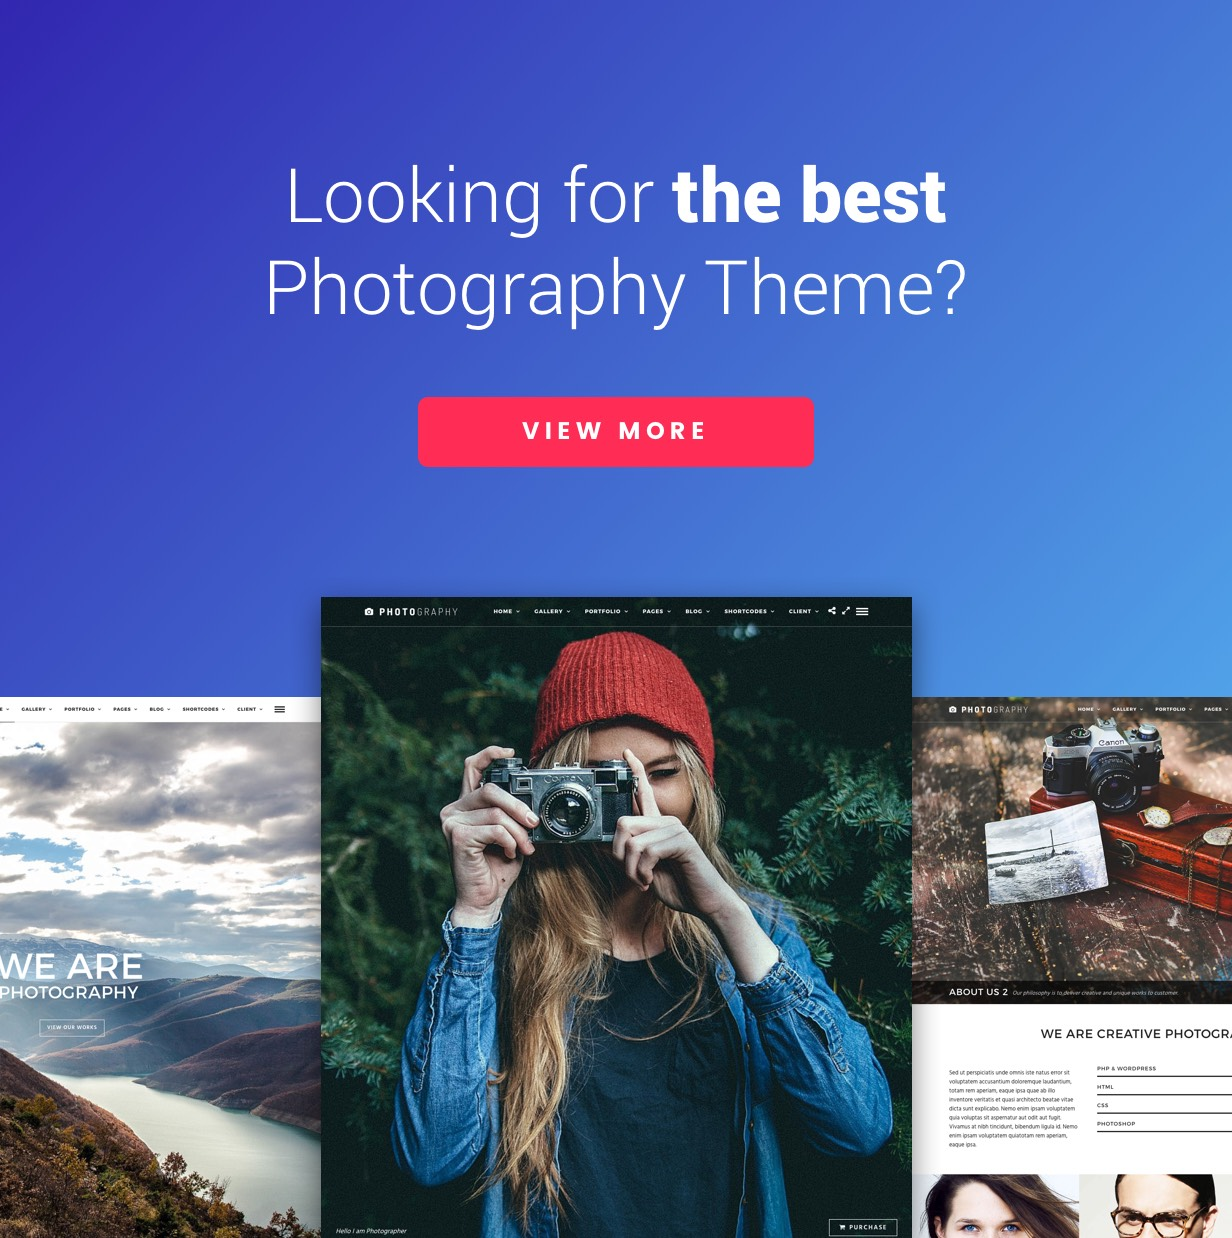 photography2 - Photography WordPress | DK for Photography